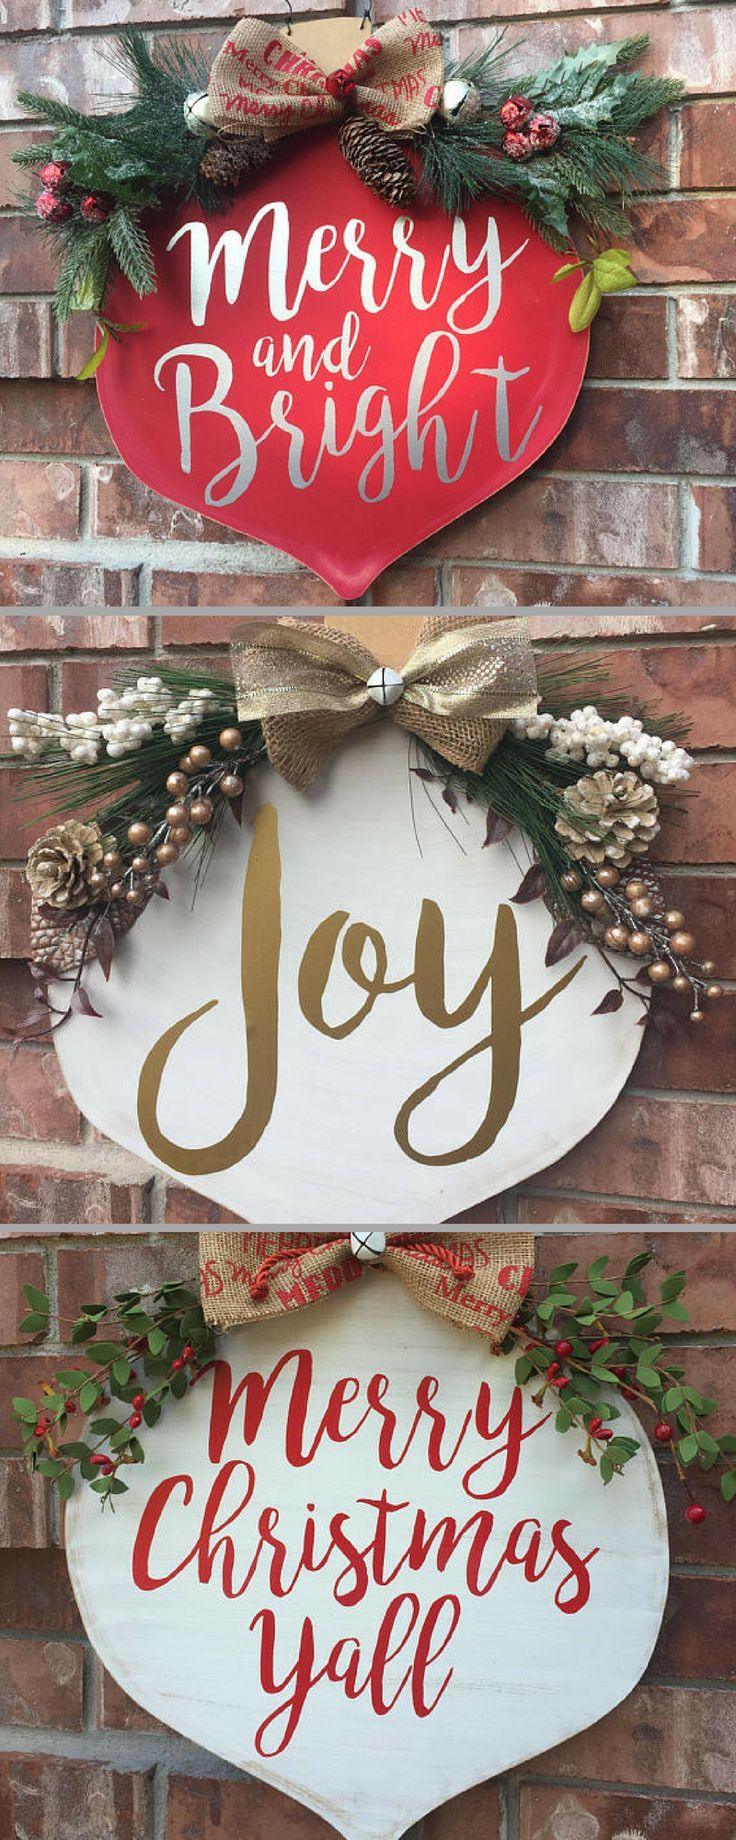 Cheerful Christmas Ornament Door Hangers. I'm in love with Merry and Bright and it's such a nice alternative to wreaths!! #commissionlink #Christmas #Christmasdecor #Christmastime #winter #frontdoor #homedecor #homedesign #homedecoration #homedecorideas #homesweethome #homestyle #country #rusticdecor